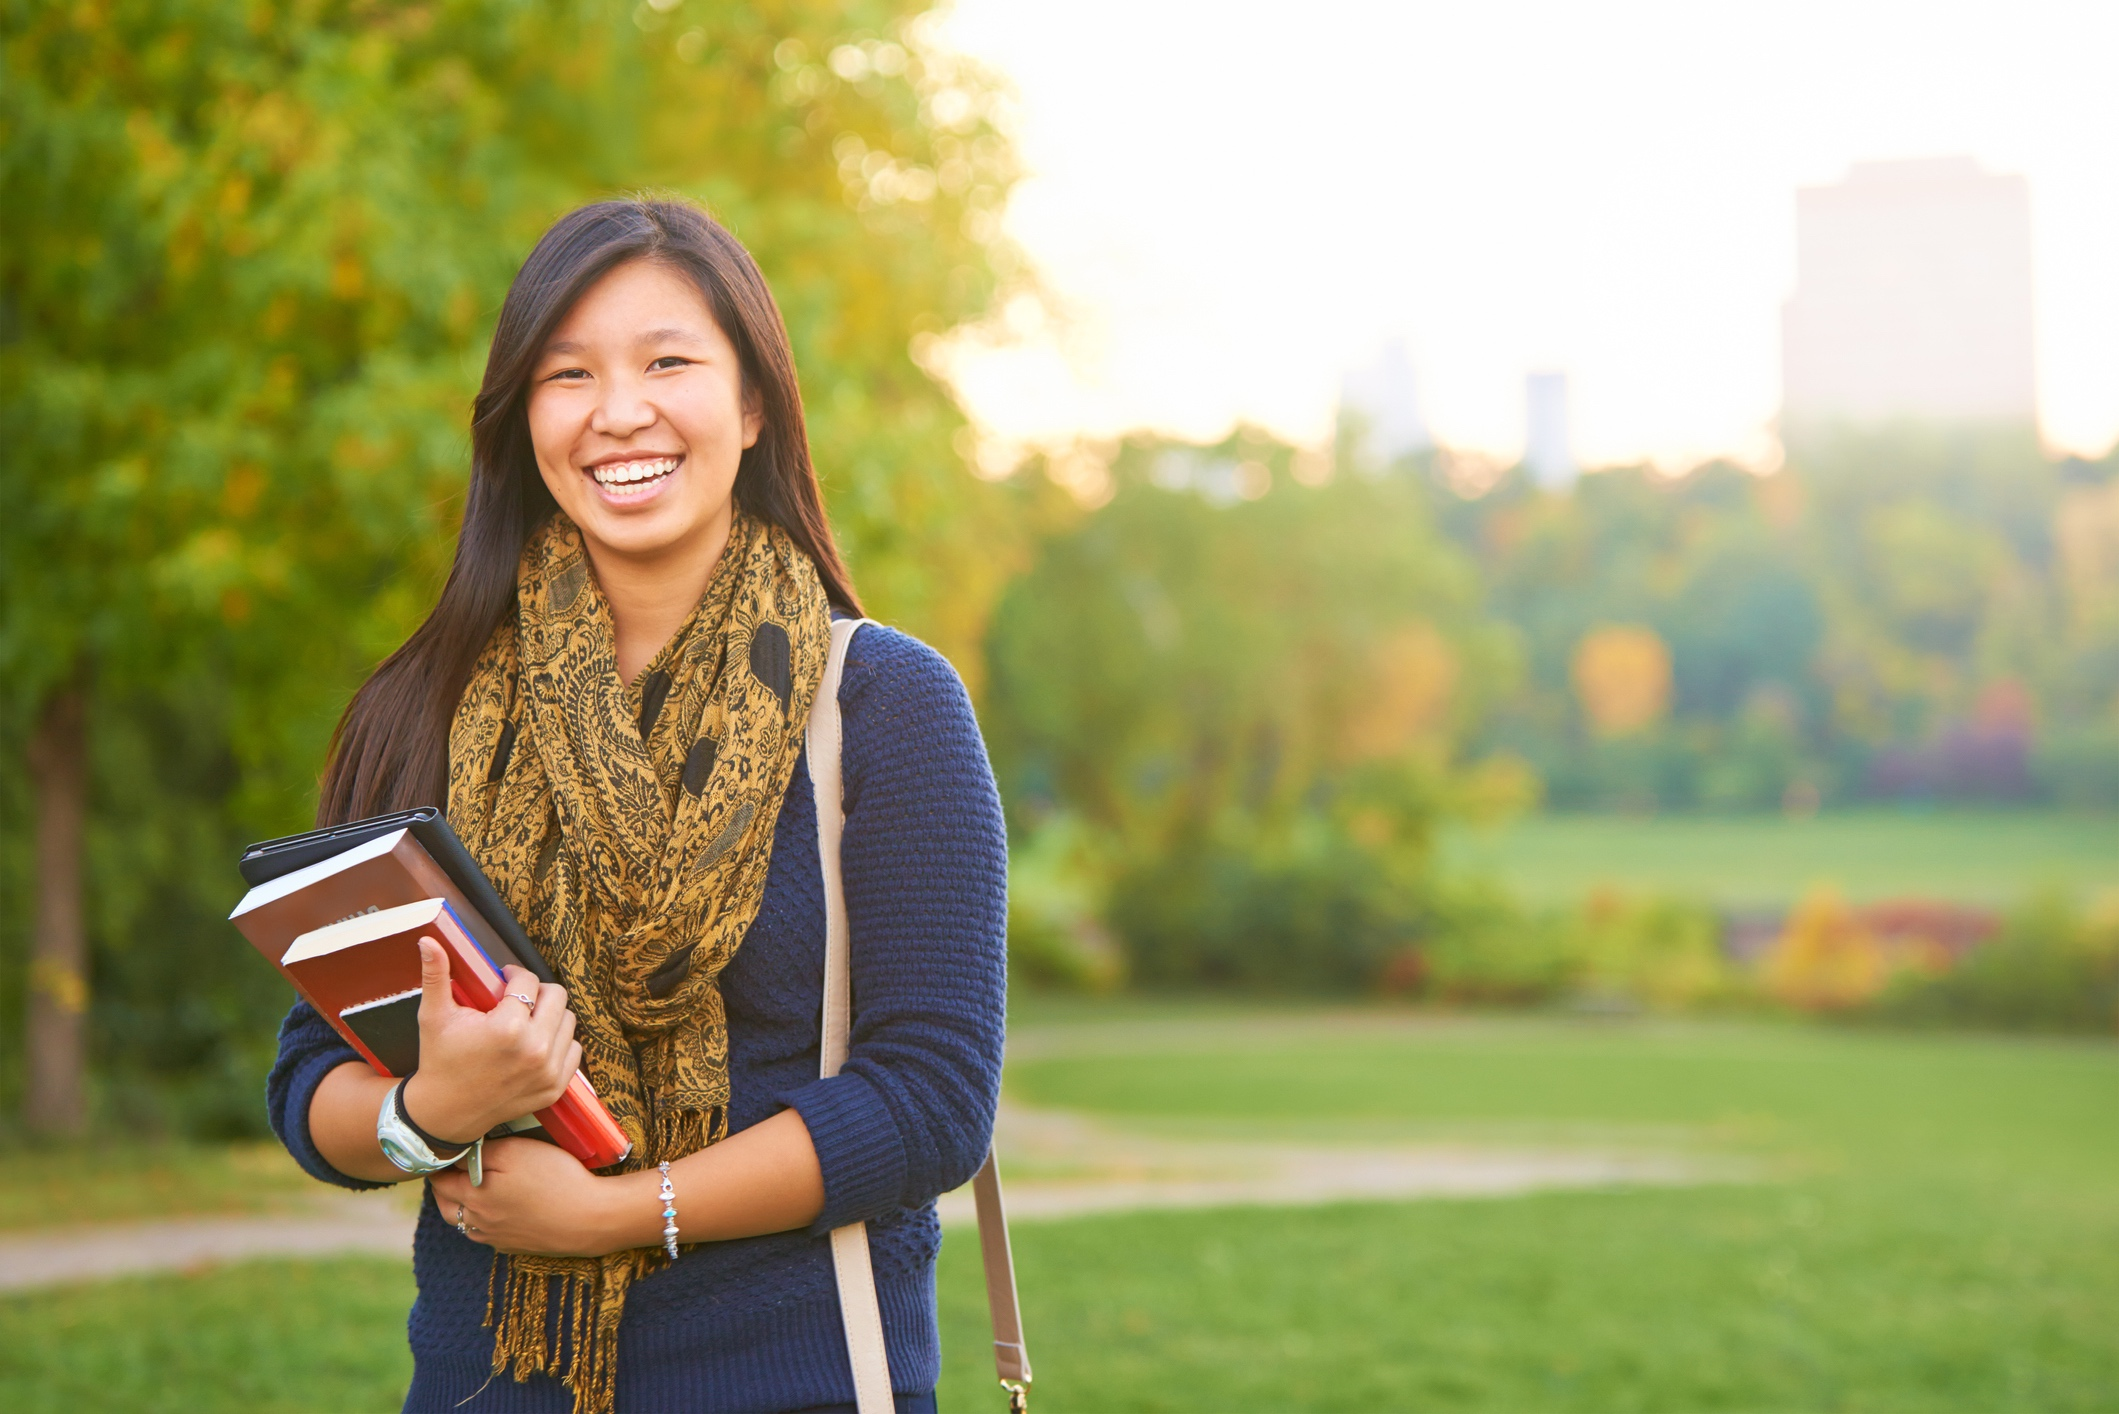 The Empowerly Advantage - Empowerly's techniques equips each applicant with both a comprehensive online portal and a dedicated team of counselors and researchers. With a database of resources at hand, Empowerly students are able to successfully navigate through their admissions journey.